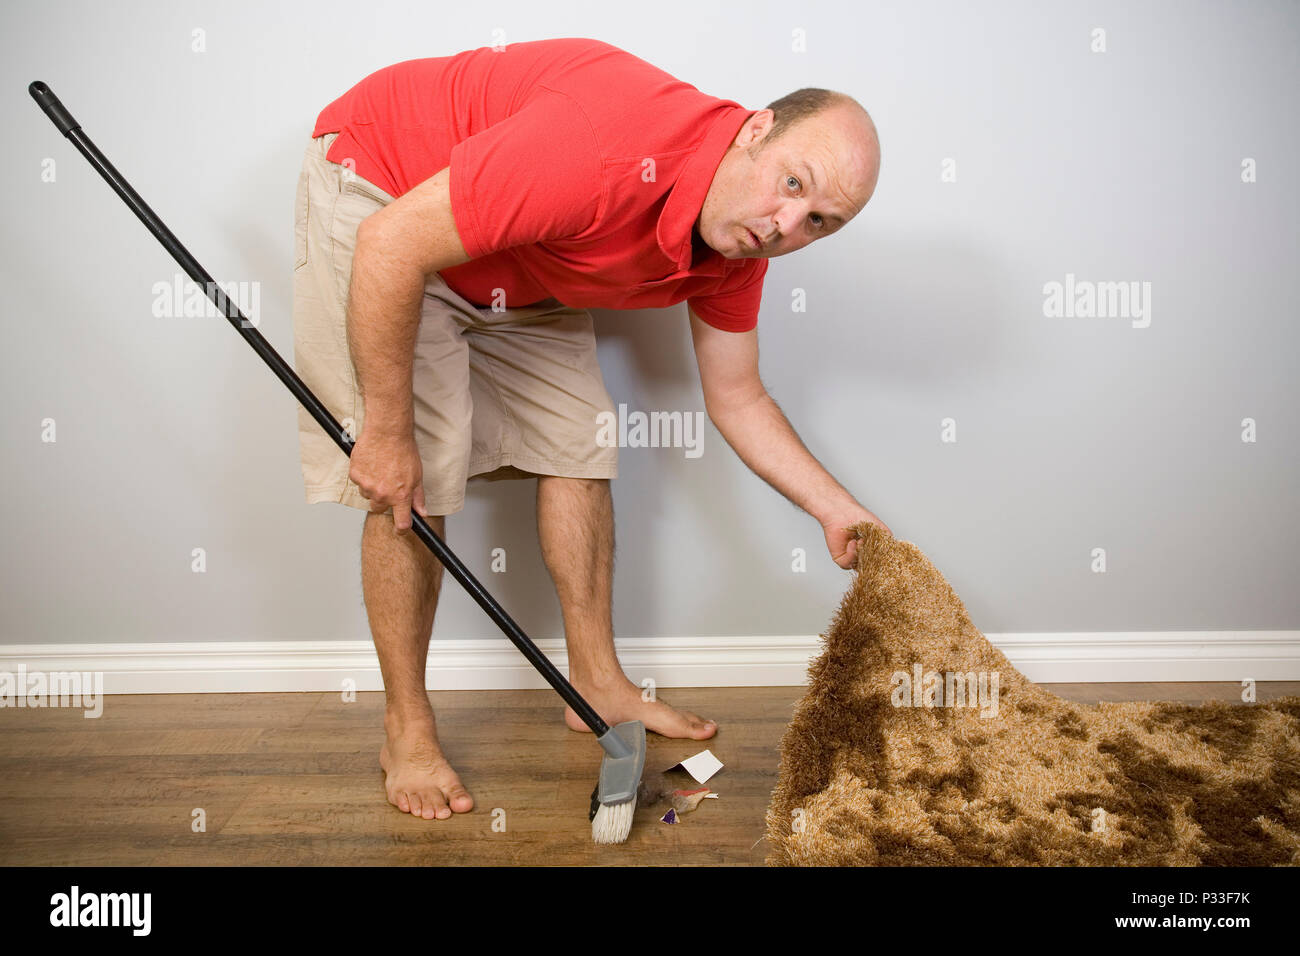 A man hiding rubbish under the carpet, sayings and concepts. - Stock Image